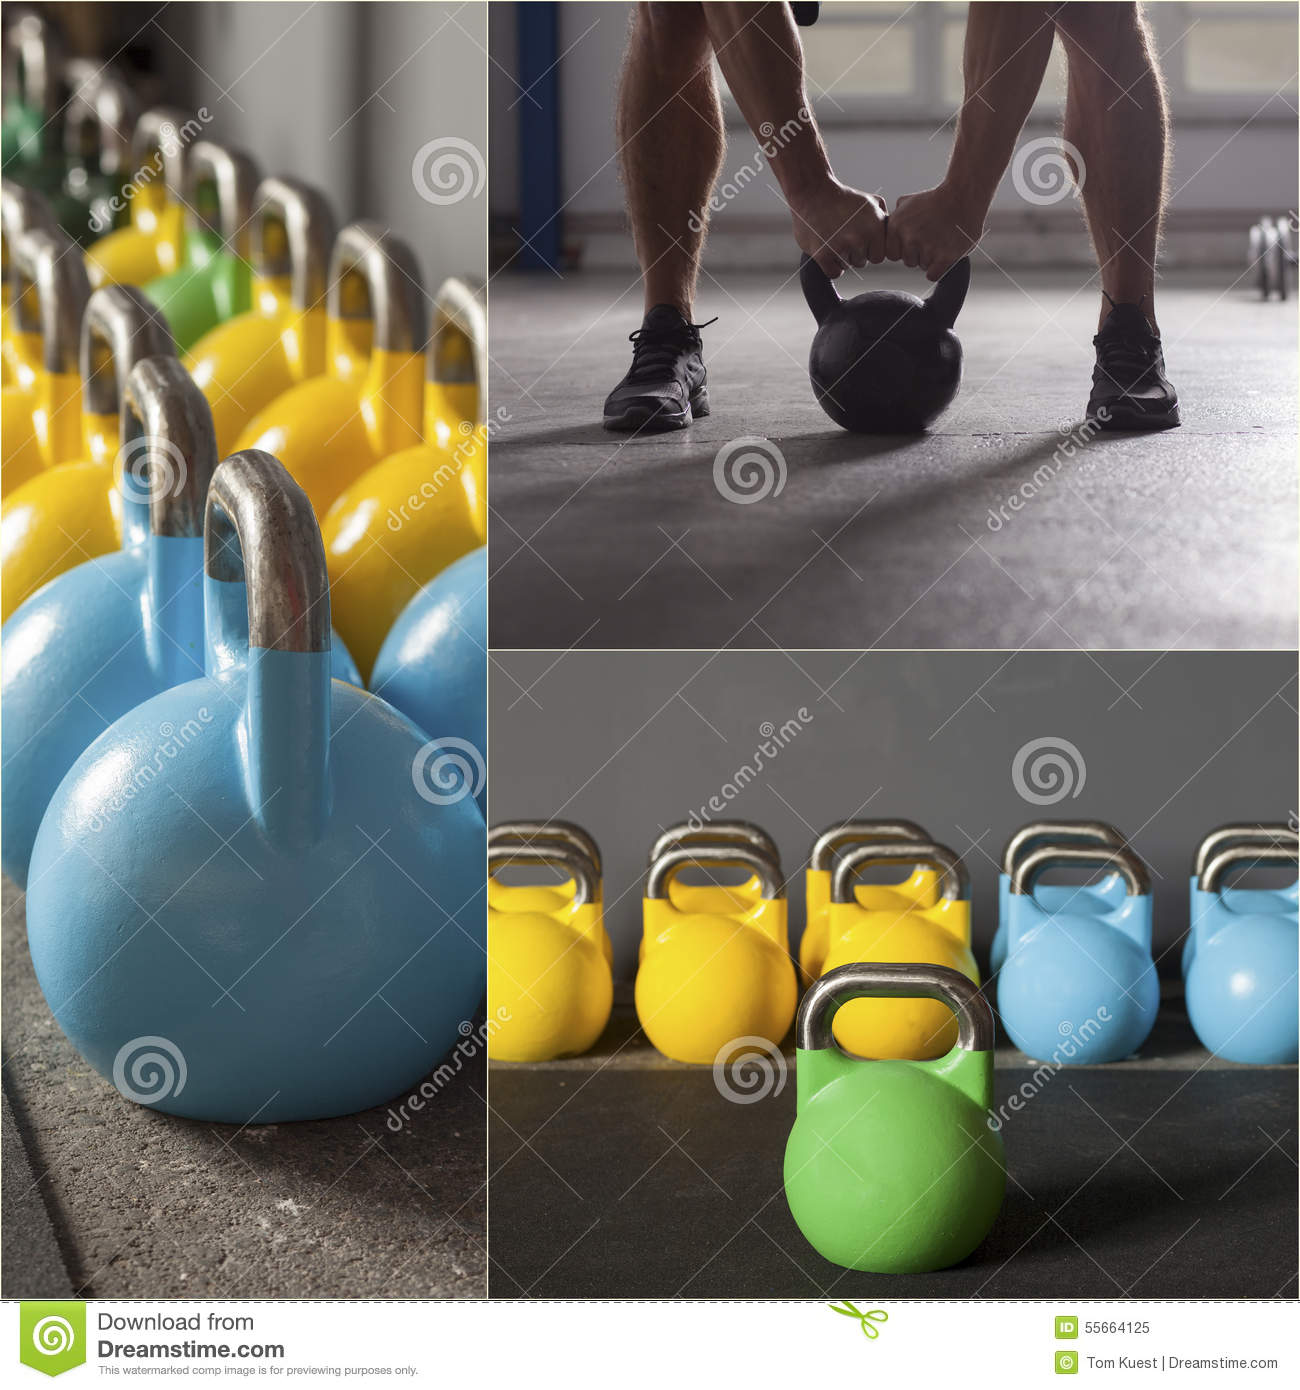 Colorful Kettlebells In A Row Stock Image - Image of bells ...